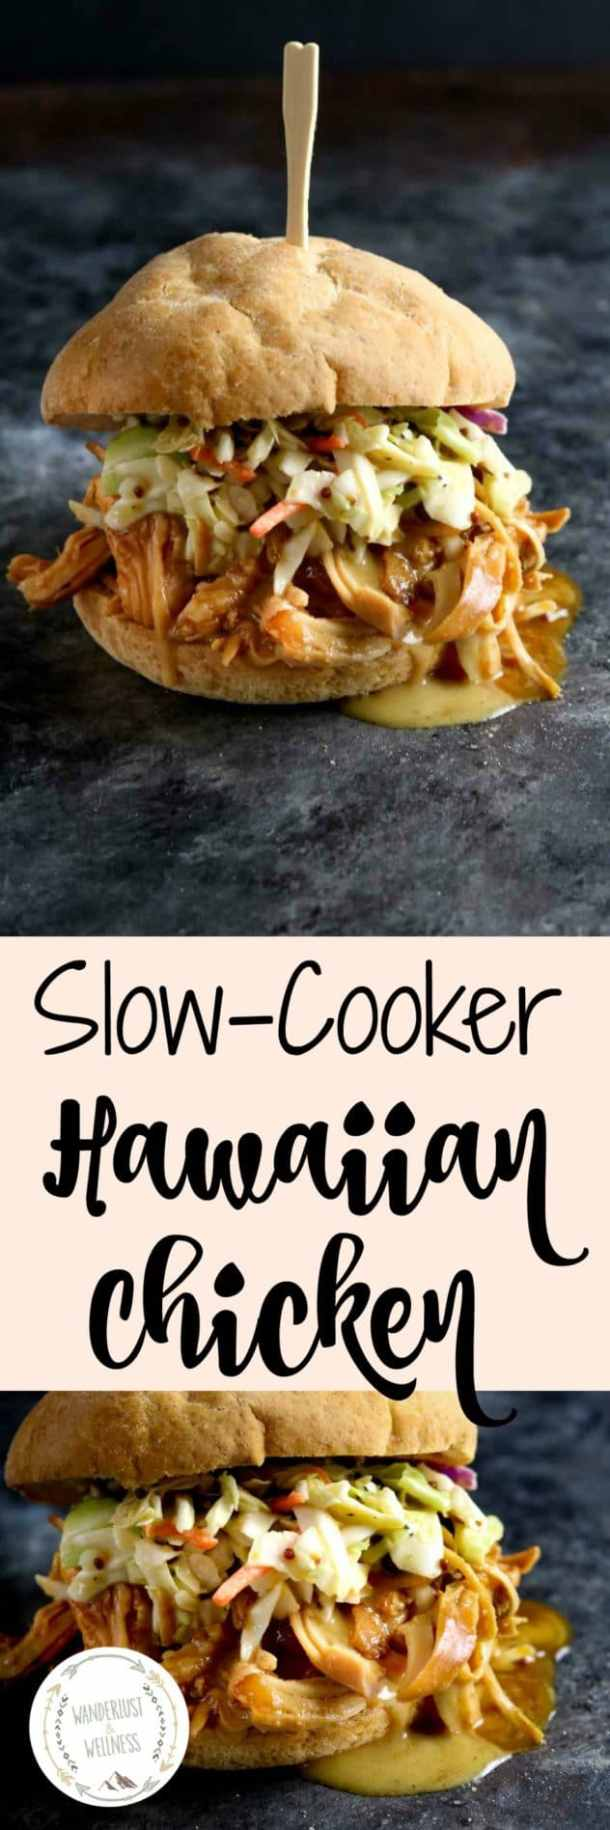 Slow-Cooker Hawaiian Chicken